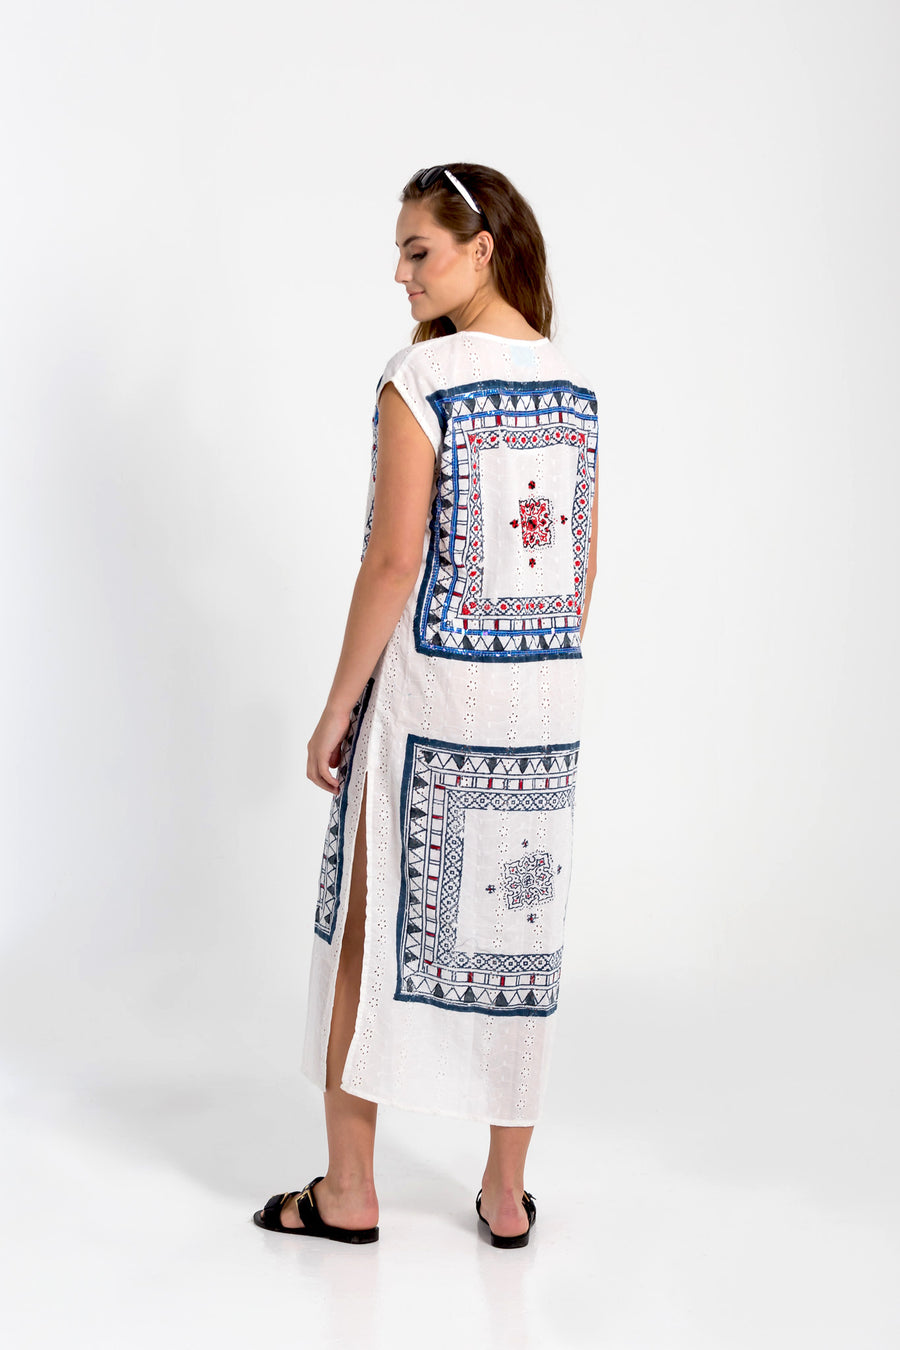 Block printed Legian beach kaftan from Baliza, available at ZERRIN